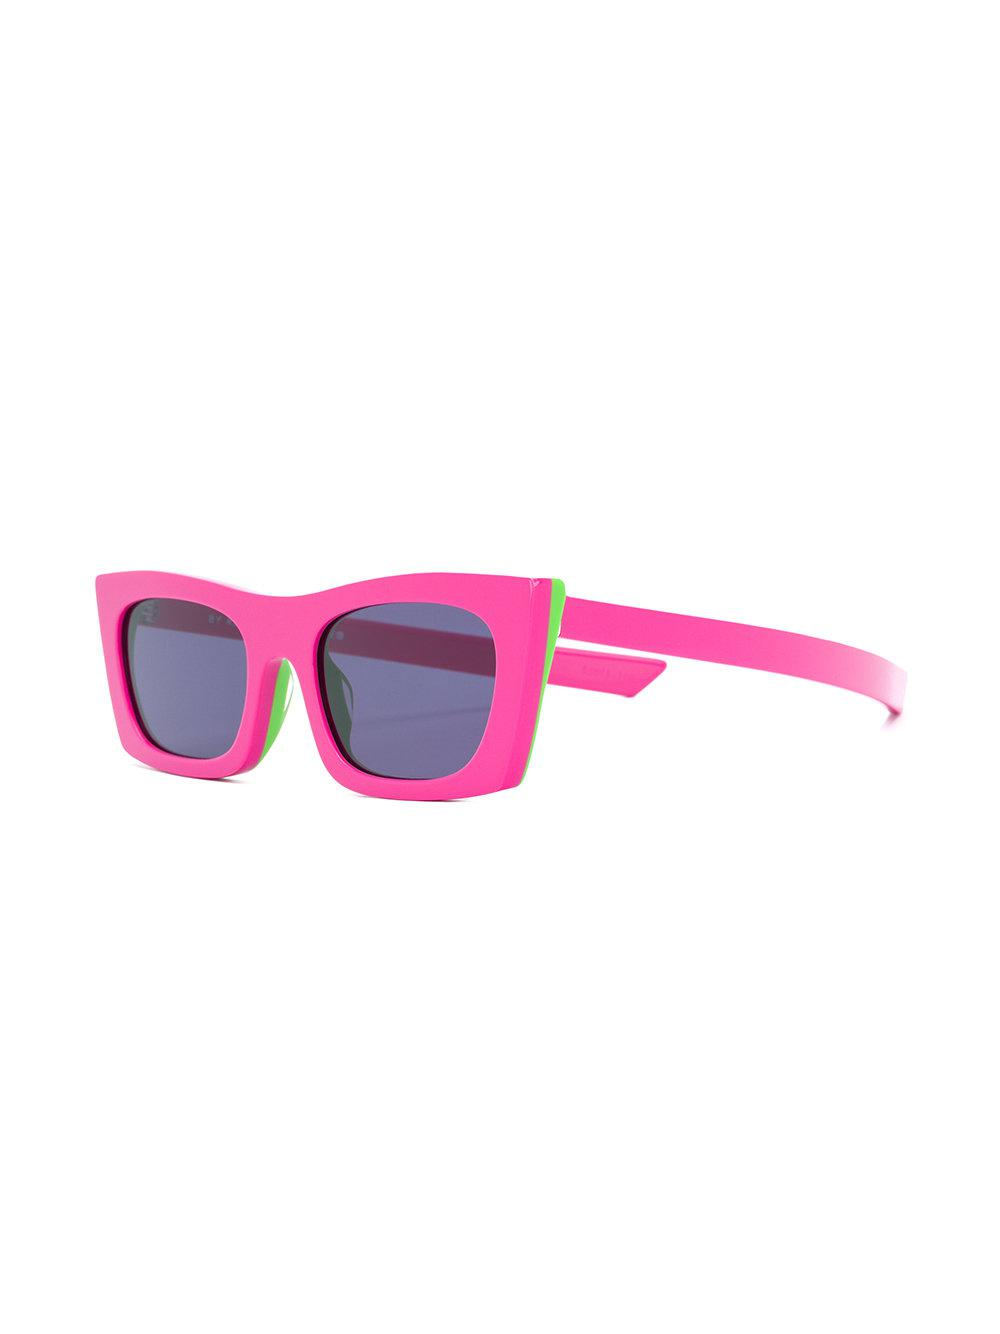 59a067dc83 Retrosuperfuture Fred Square Frame Sunglasses in Pink - Lyst